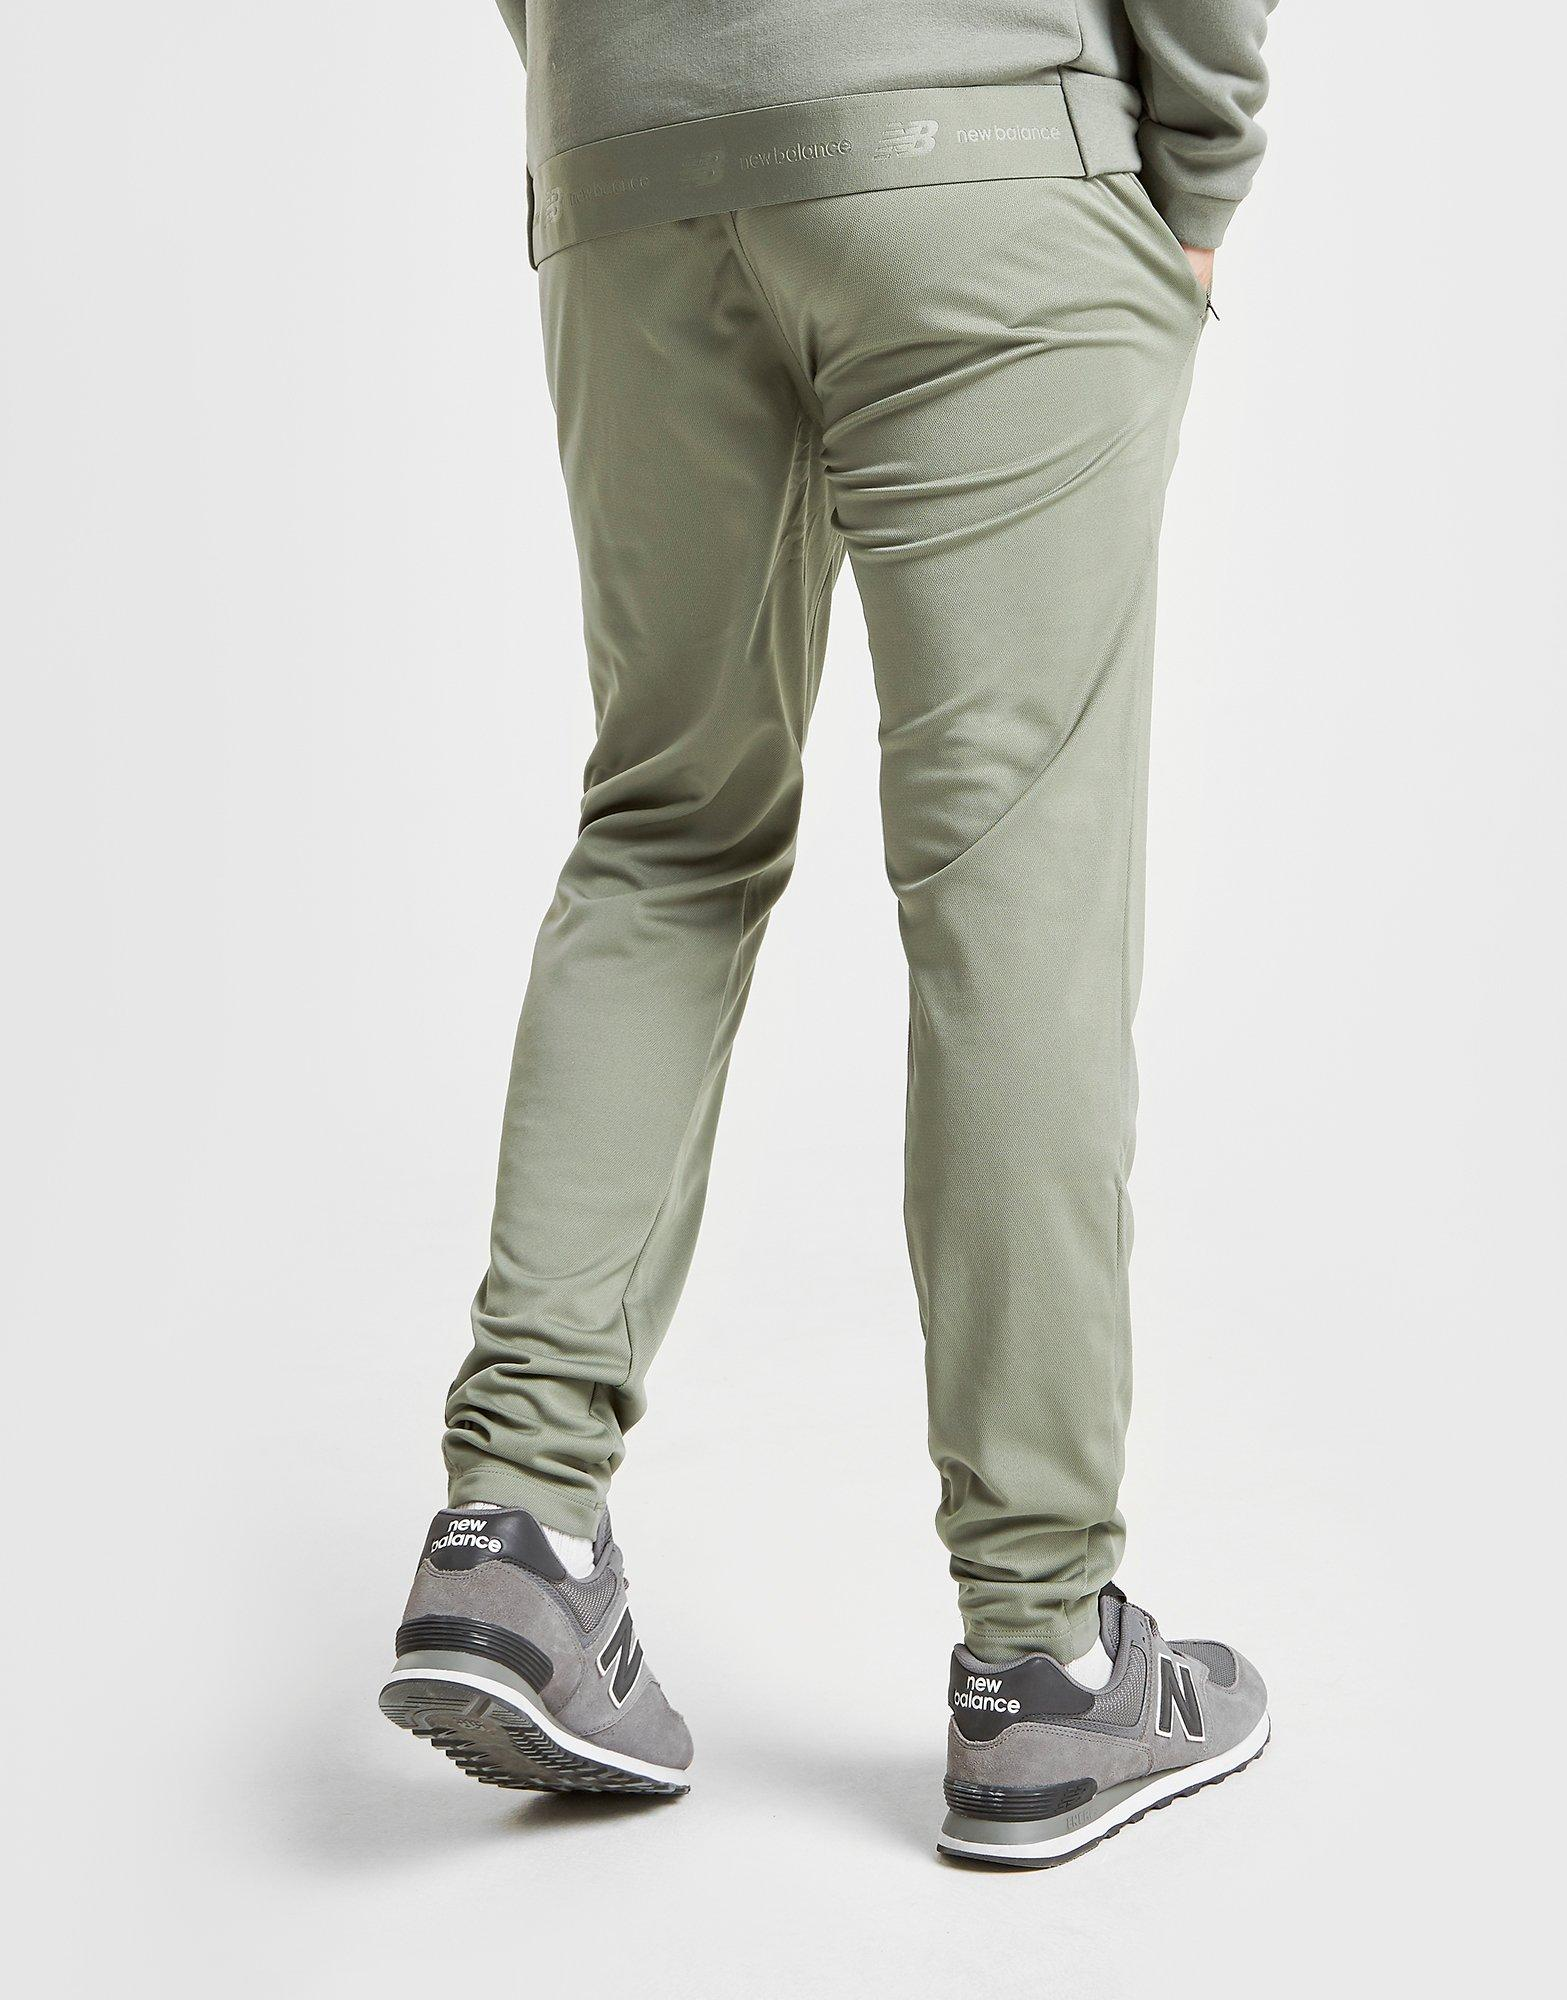 new balance green track pants